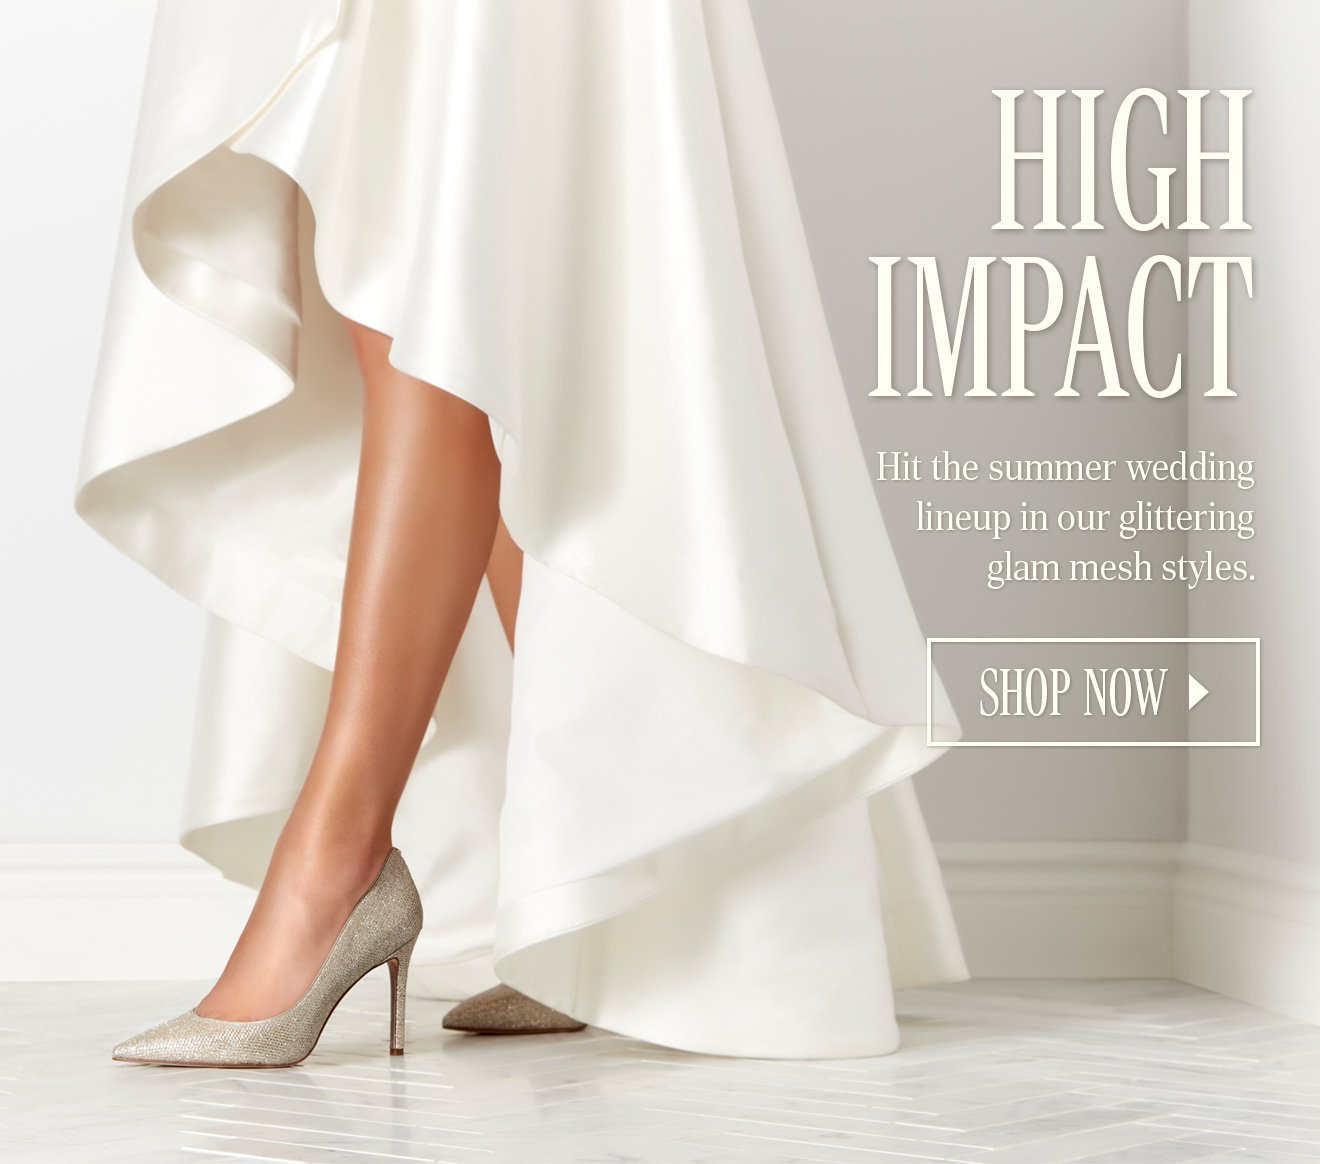 aa3d13d6af89 HIGH IMPACT. Hit the summer wedding lineup in our glittering glam mesh  styles. SHOP